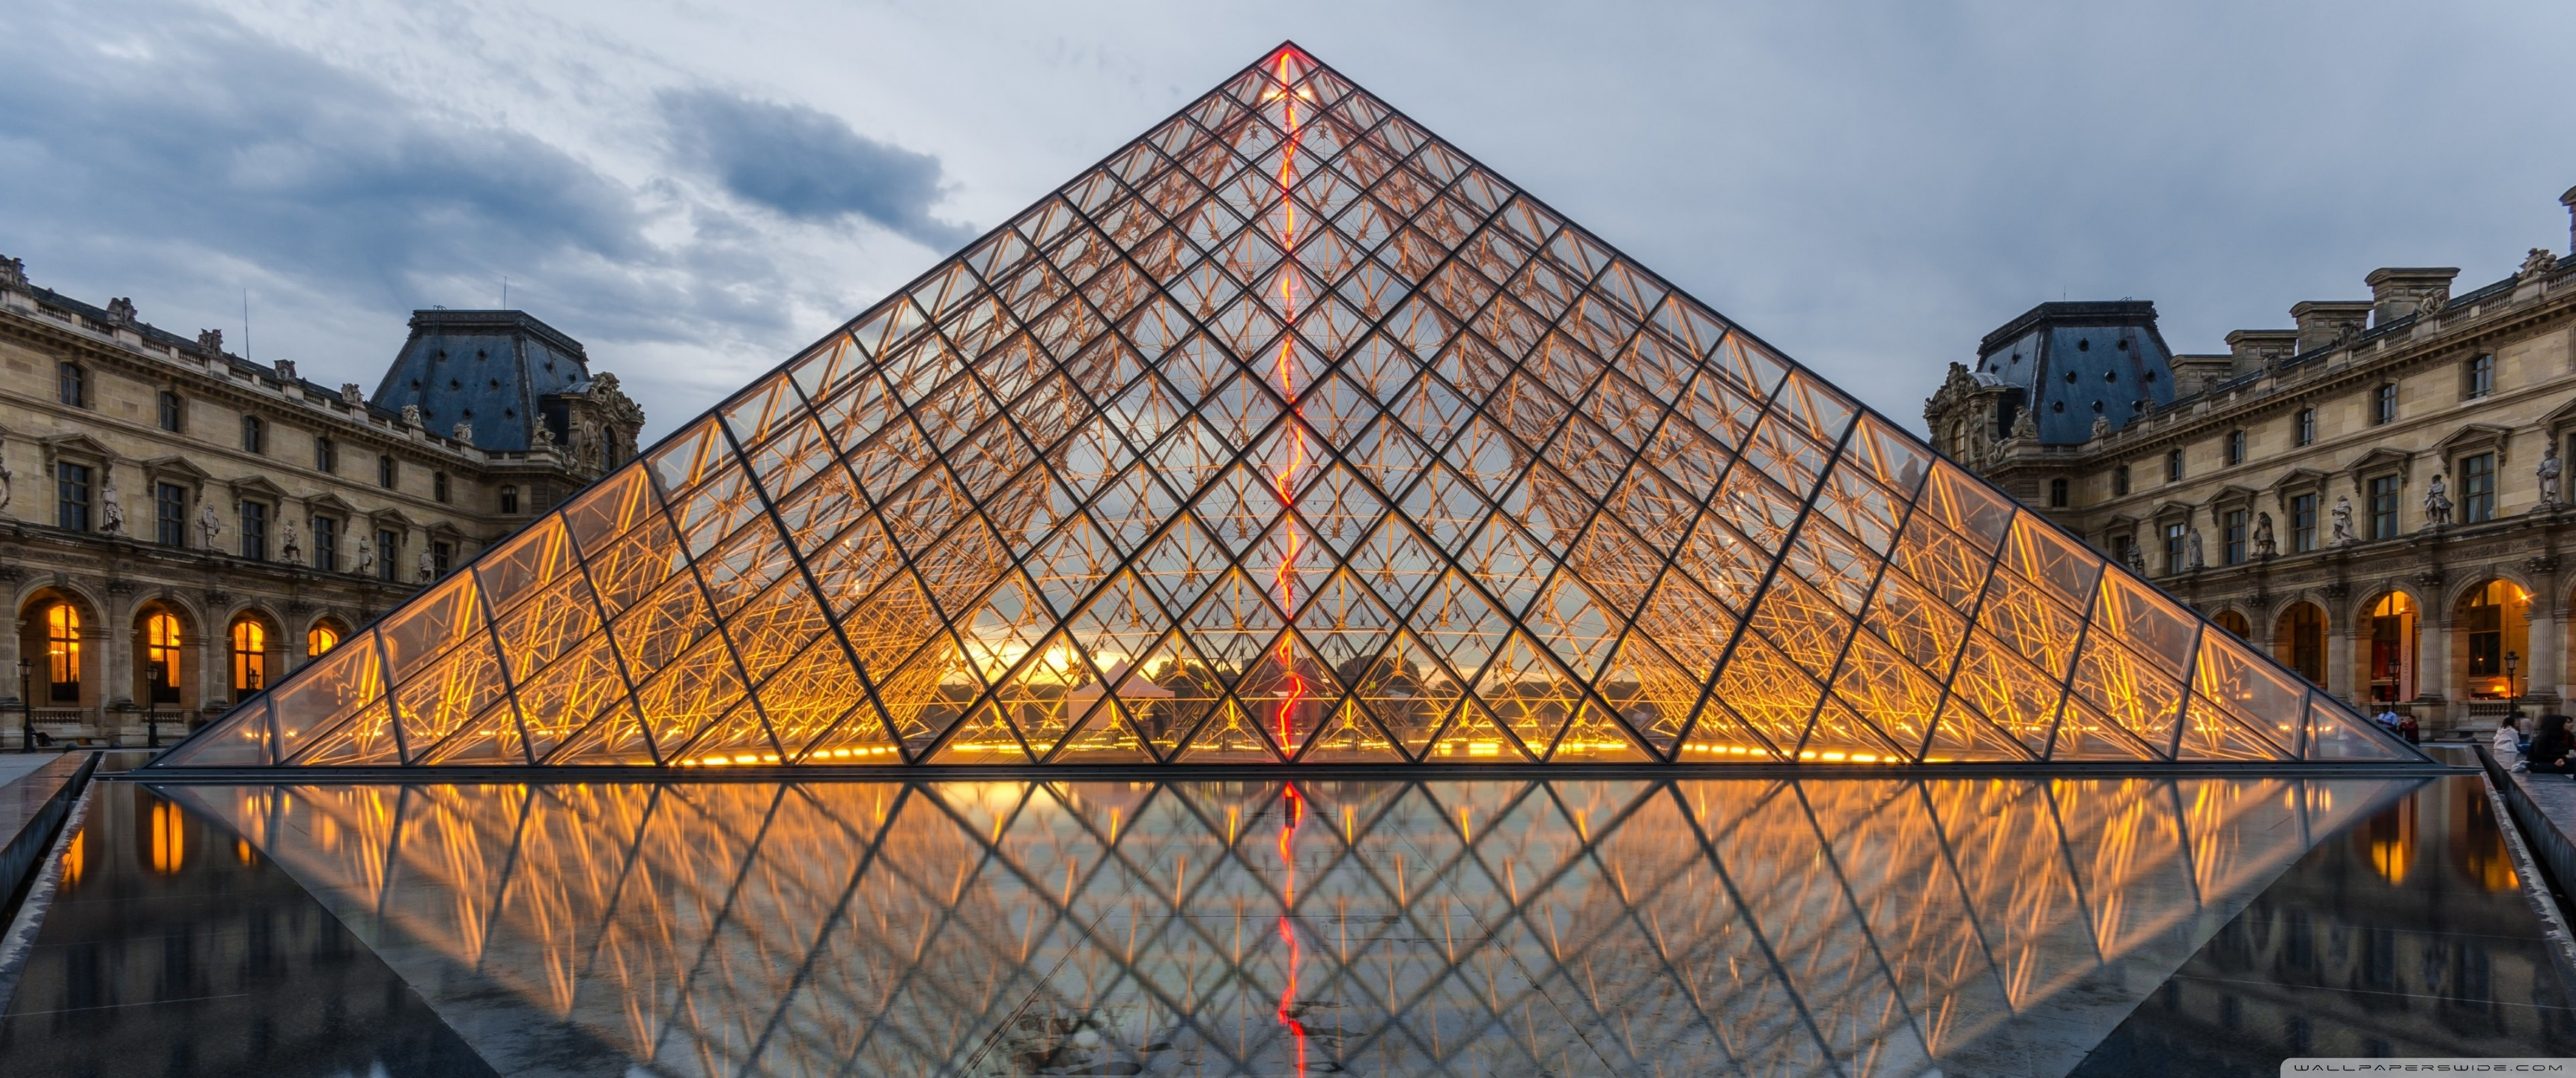 Pyramid of the Louvre Paris France Europe 4K HD Desktop 3440x1440